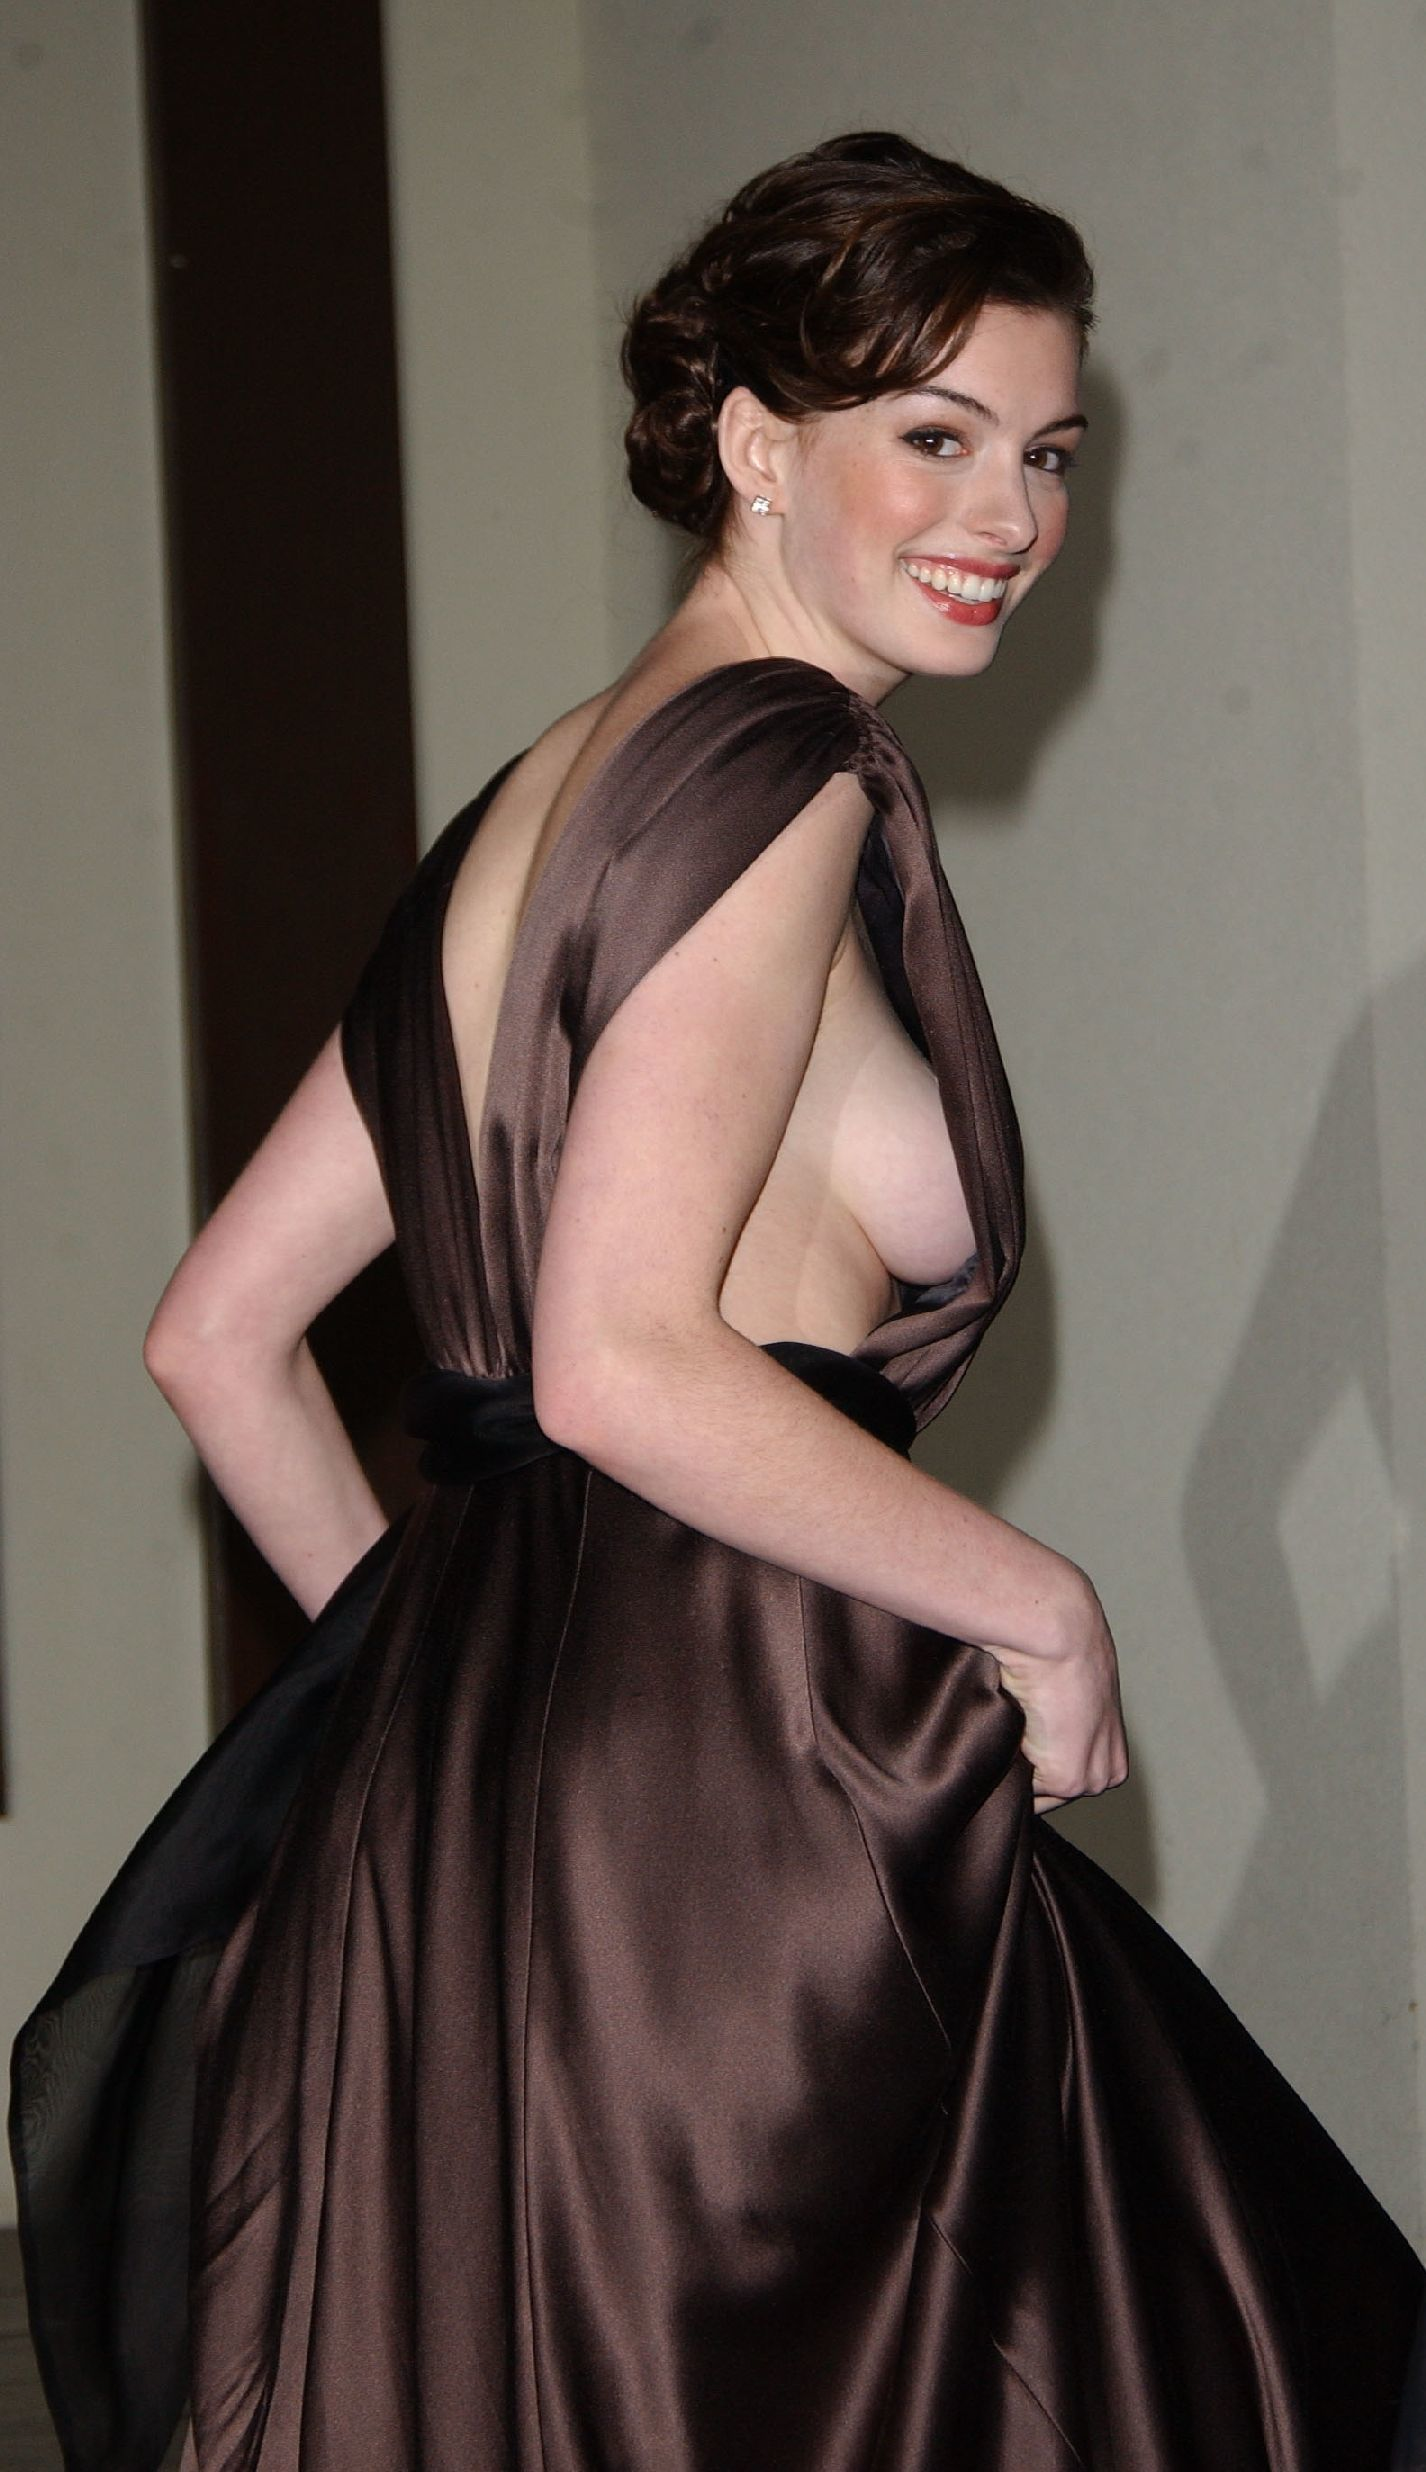 anne hathaway Actress sideboob HD Wallpaper